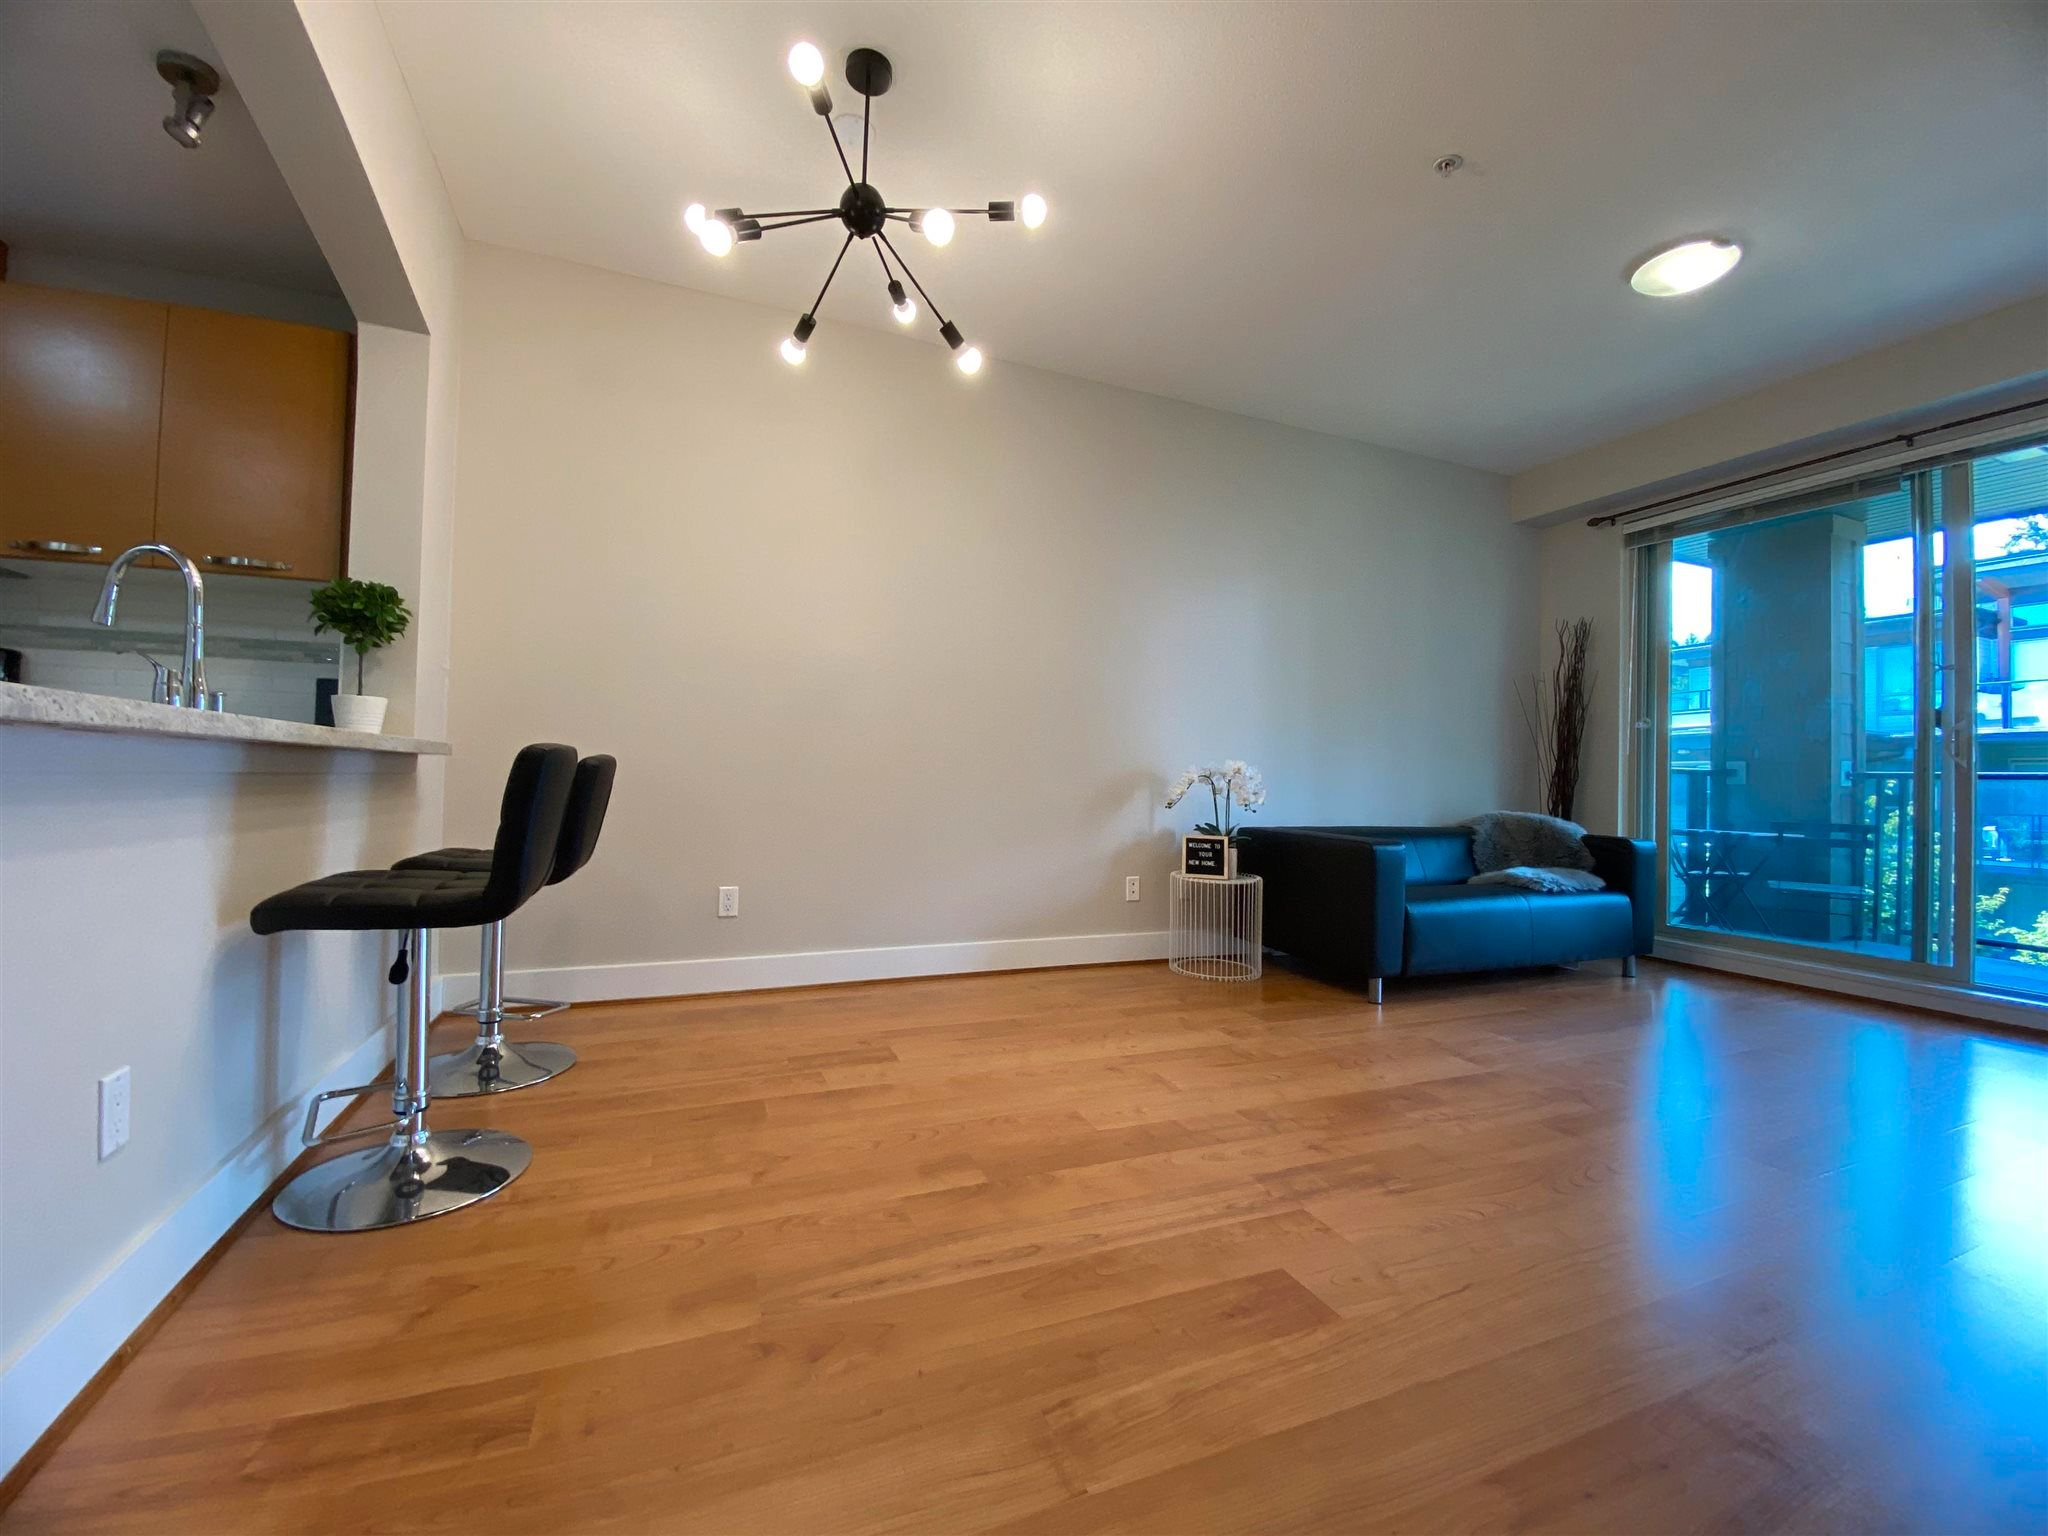 """Main Photo: 304 7428 BYRNEPARK Walk in Burnaby: South Slope Condo for sale in """"GREEN"""" (Burnaby South)  : MLS®# R2604124"""